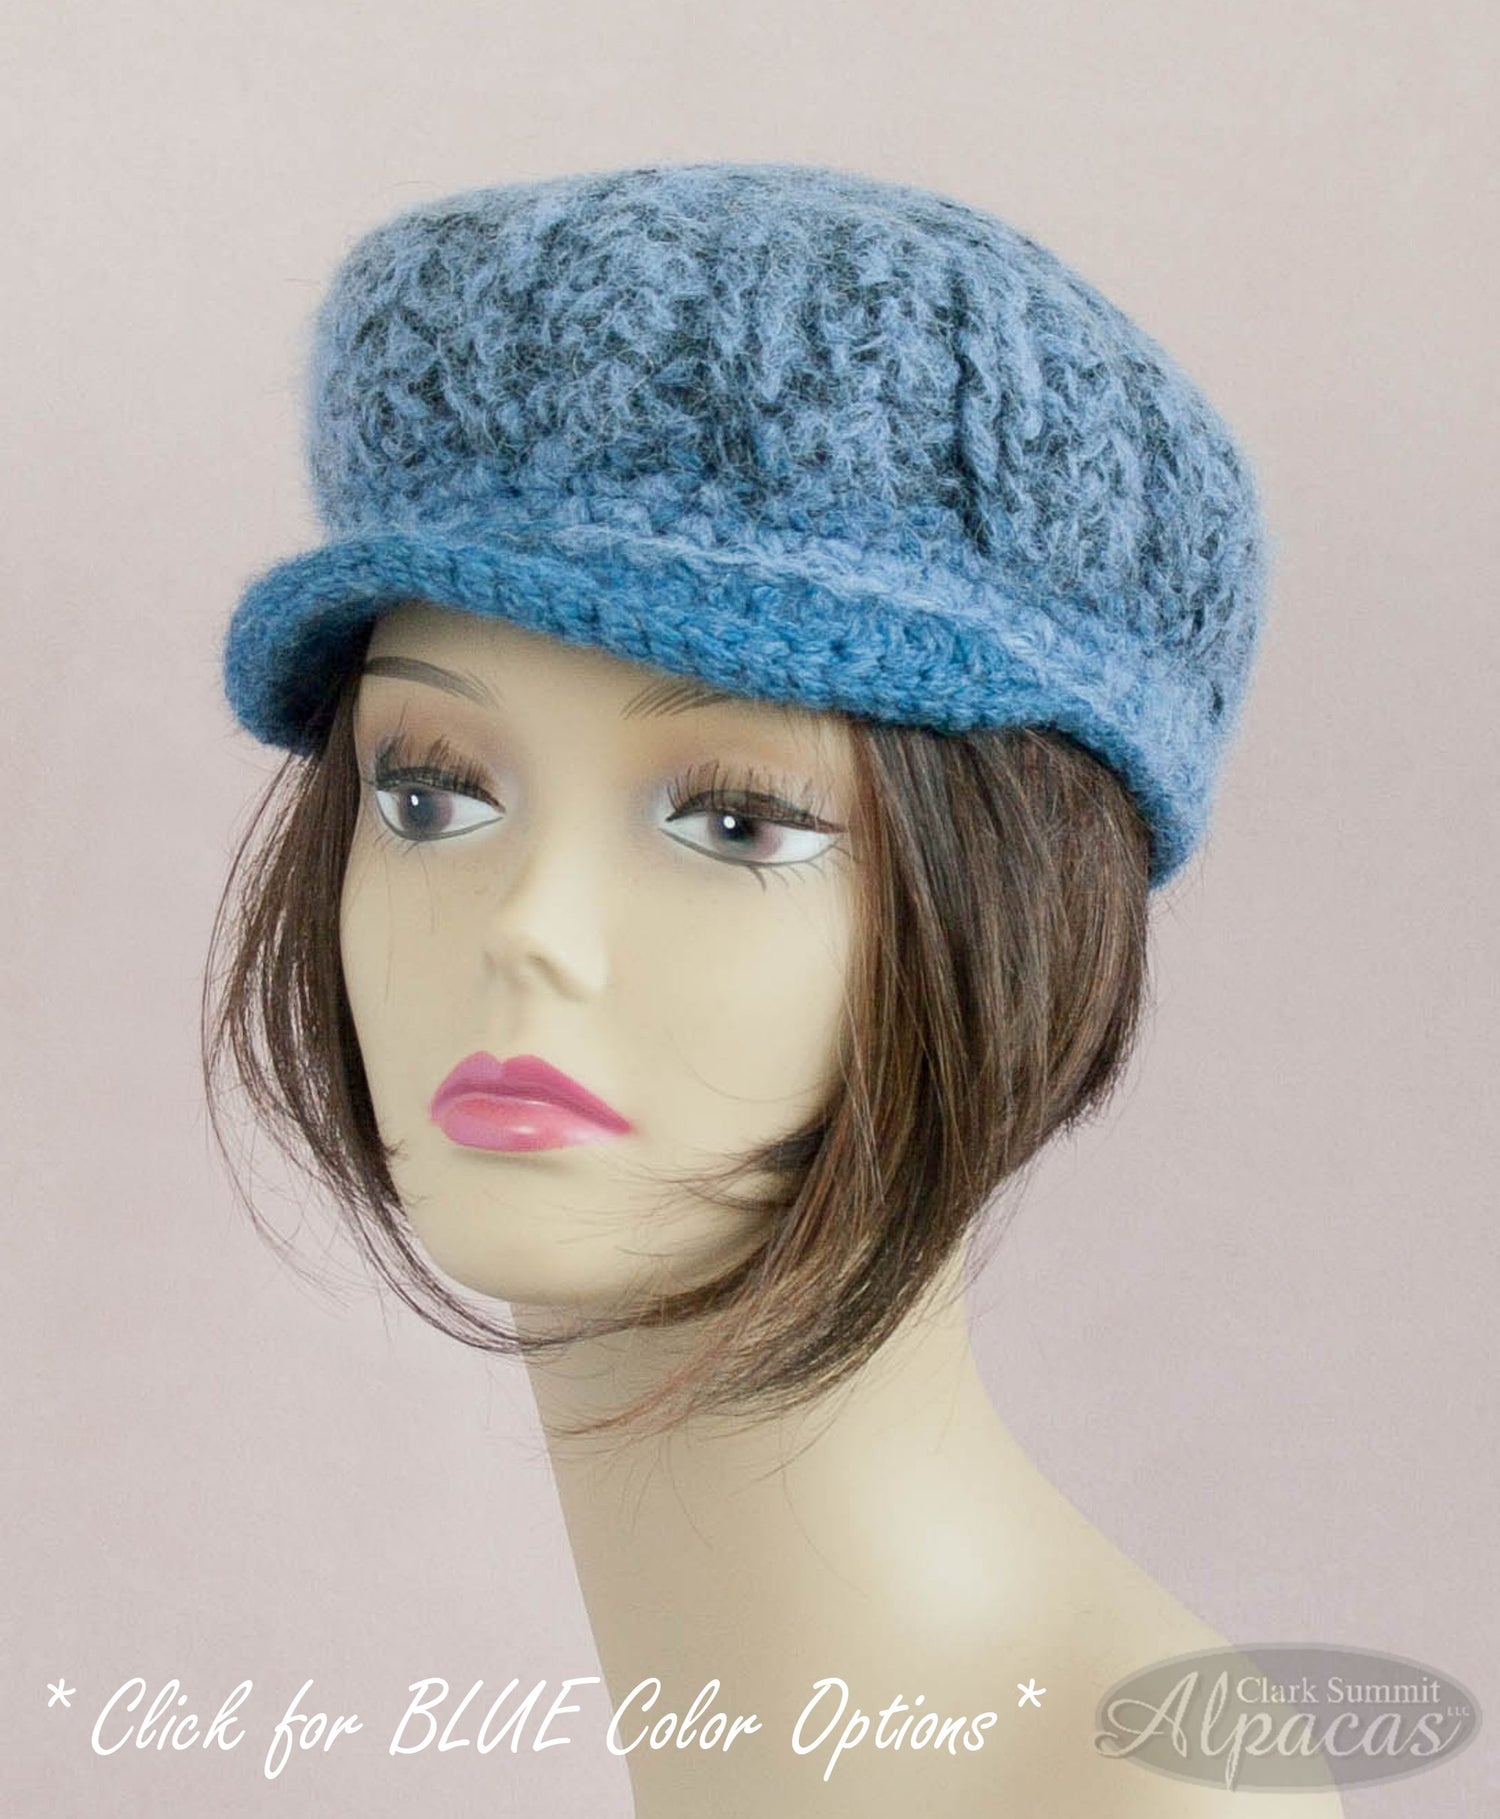 Alpaca Wool Visor Hat Blues - Llama Lovers Crocheted Hat - Semi Felted for Year Round Comfort